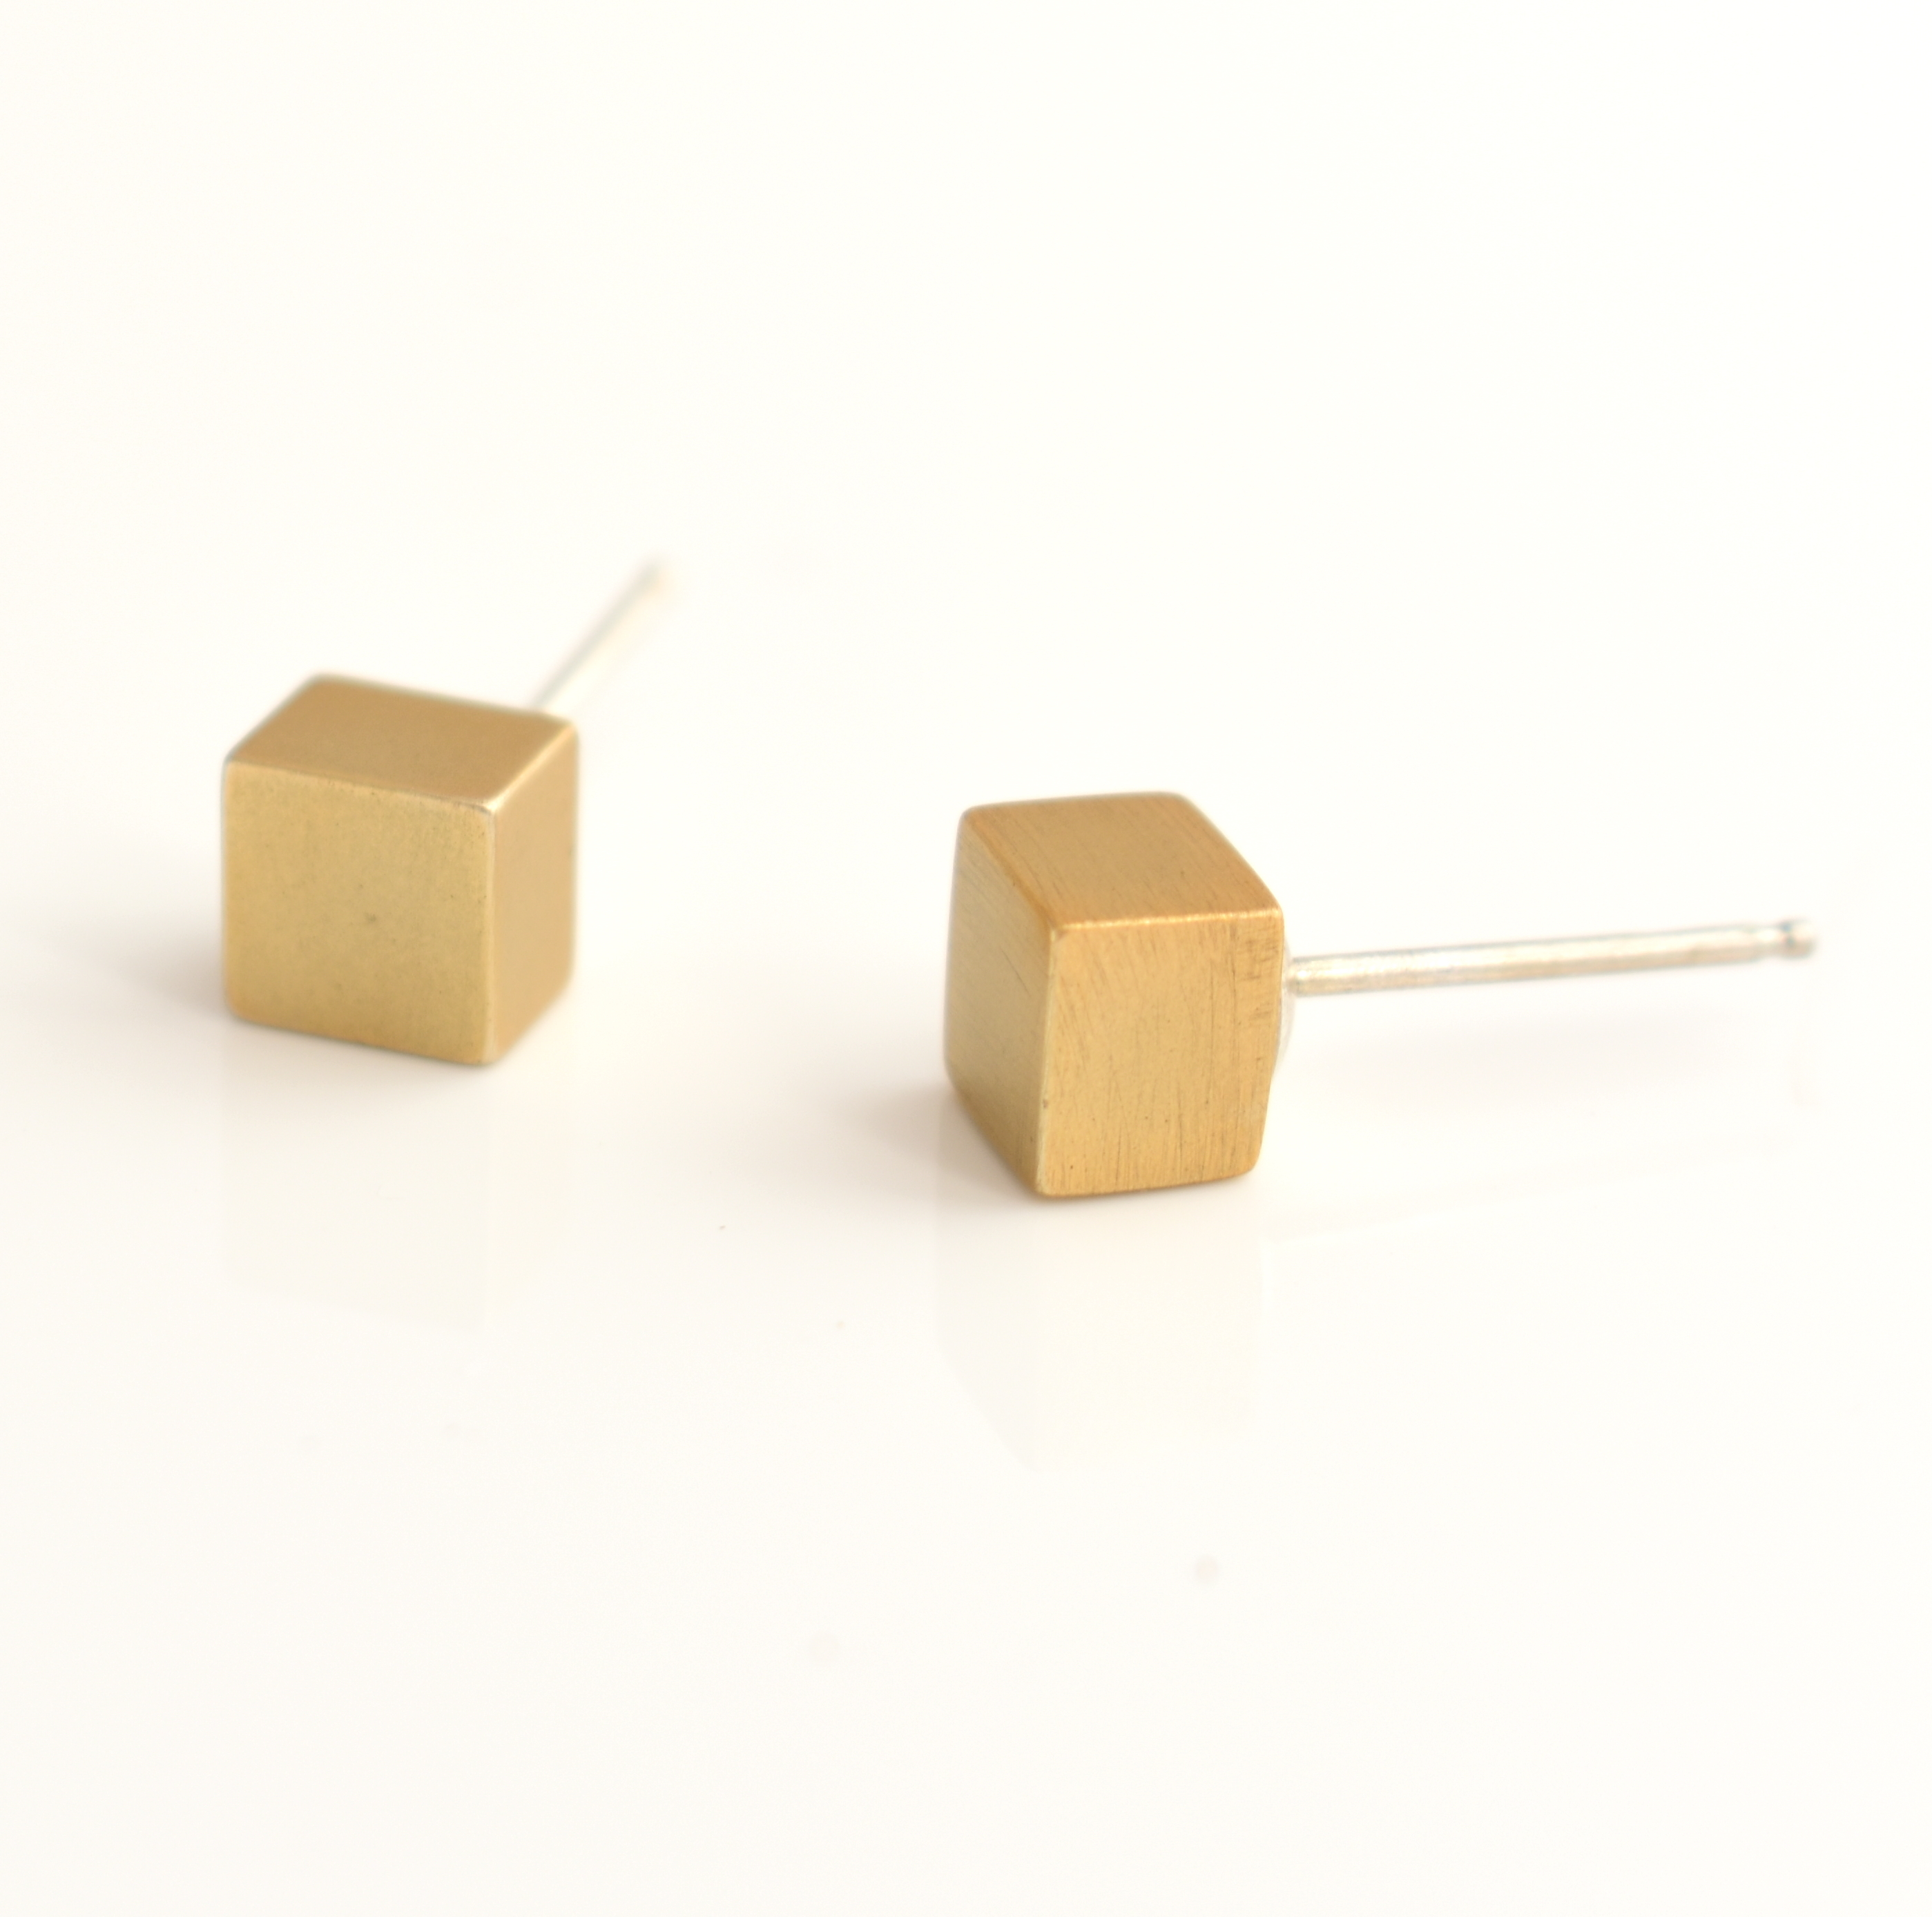 Small Cube Stud Earrings